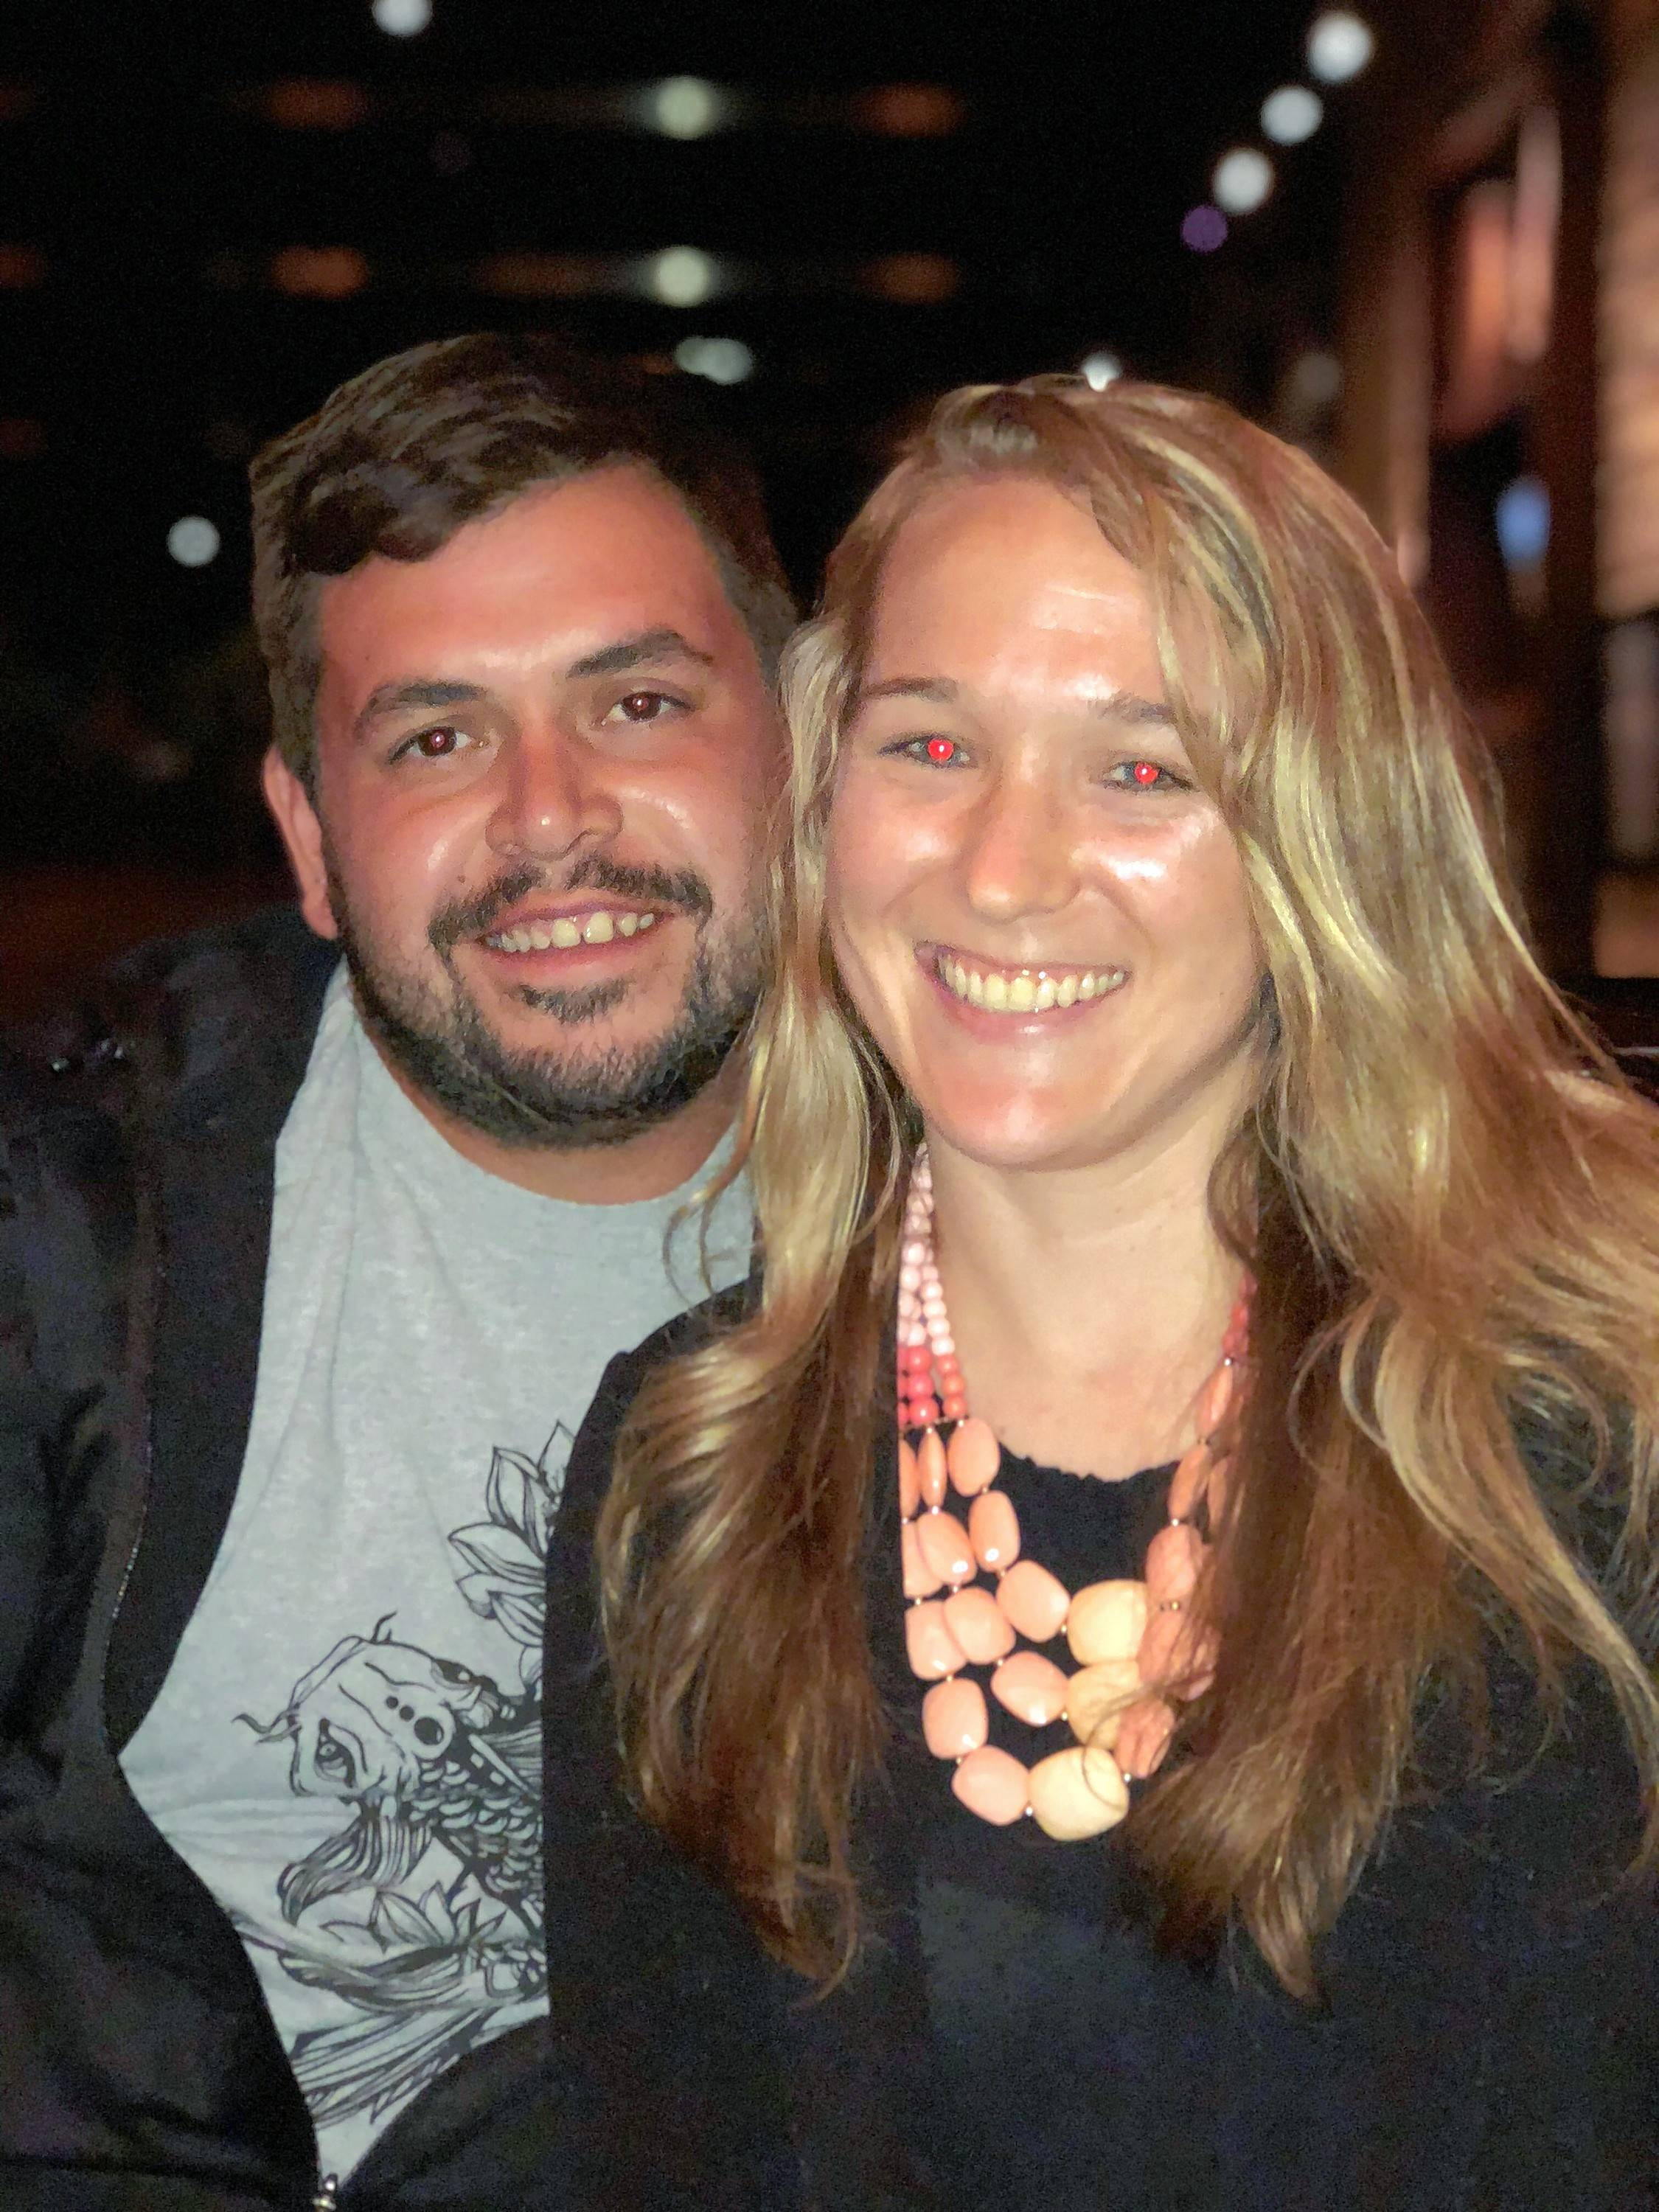 Algonquin residents and Barrington High School graduates Tony Rios and Danni Shanahan will be getting married Saturday, Sept. 15. After the ceremony, the couple and their wedding party will take pictures outside Barrington High, where Rios and Shanahan met in 2006.